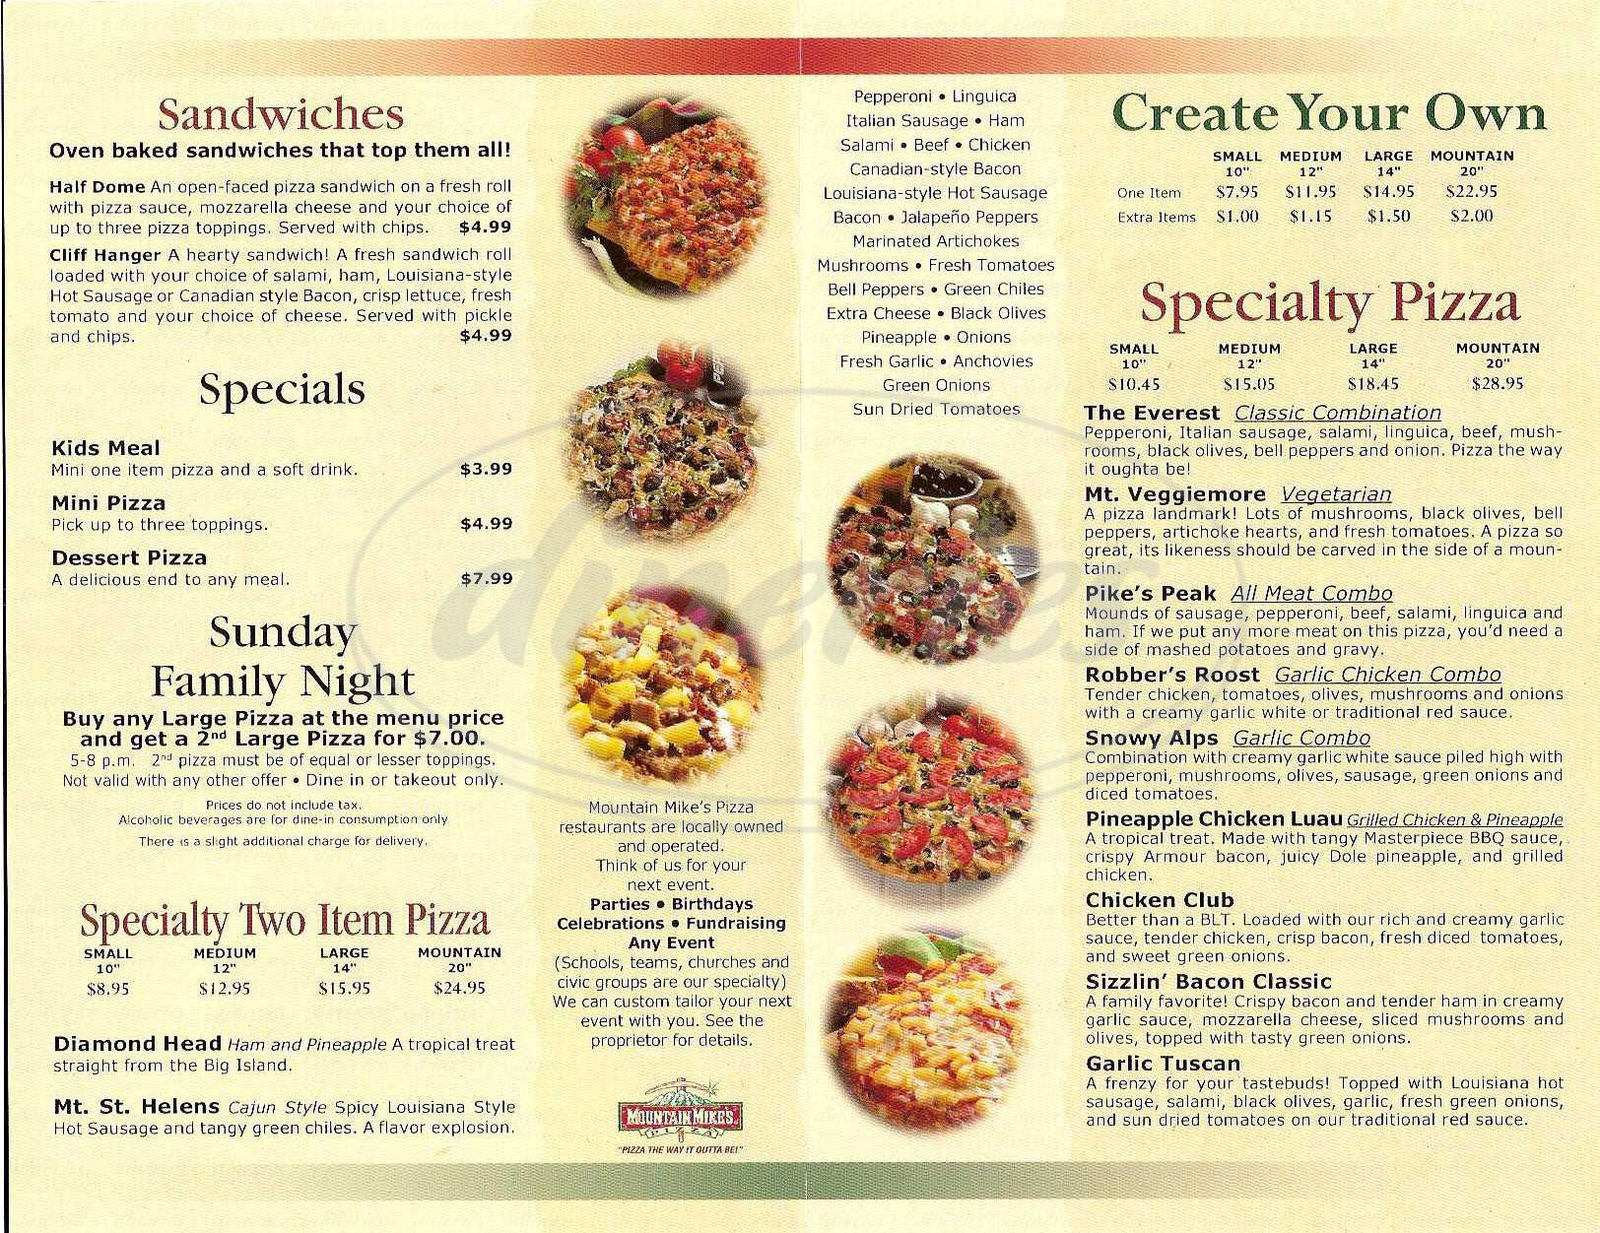 Regular prices for the entire menu of Mountain Mike's Pizza. Try McKinley, the Everest, Pike's Peak and Chicken Club pizzas. Order your favorite pizza now/5().